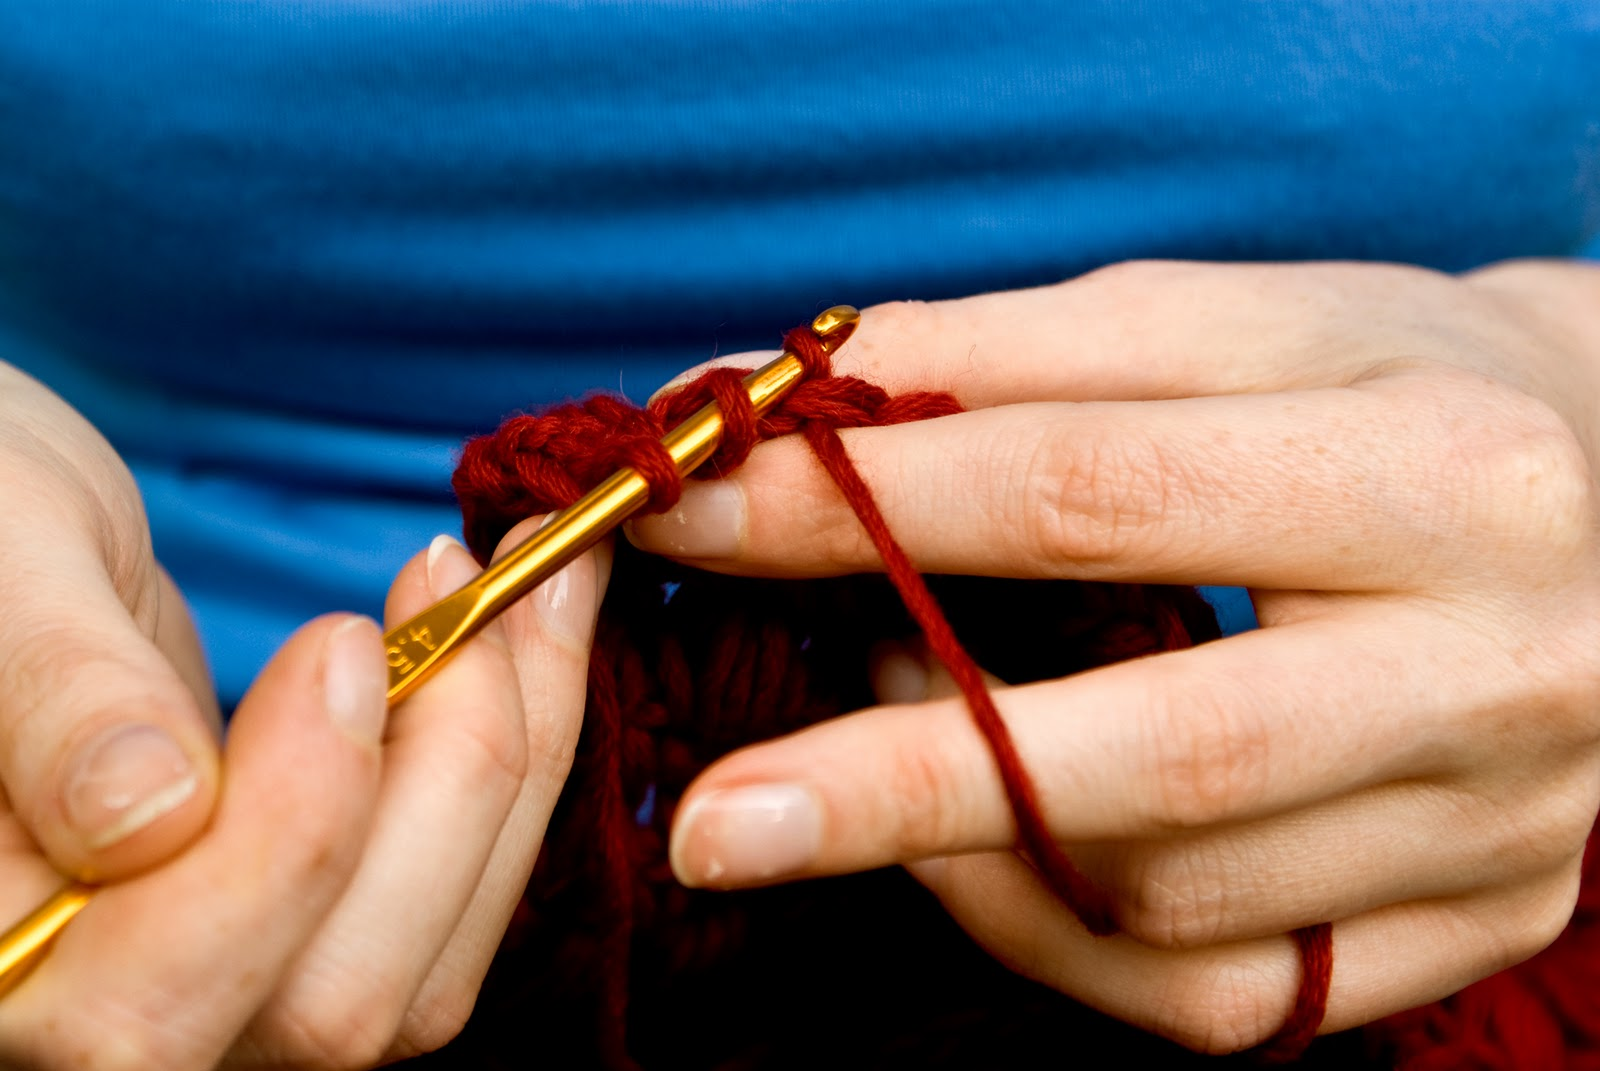 Crocheting With Hands : crochet-hands